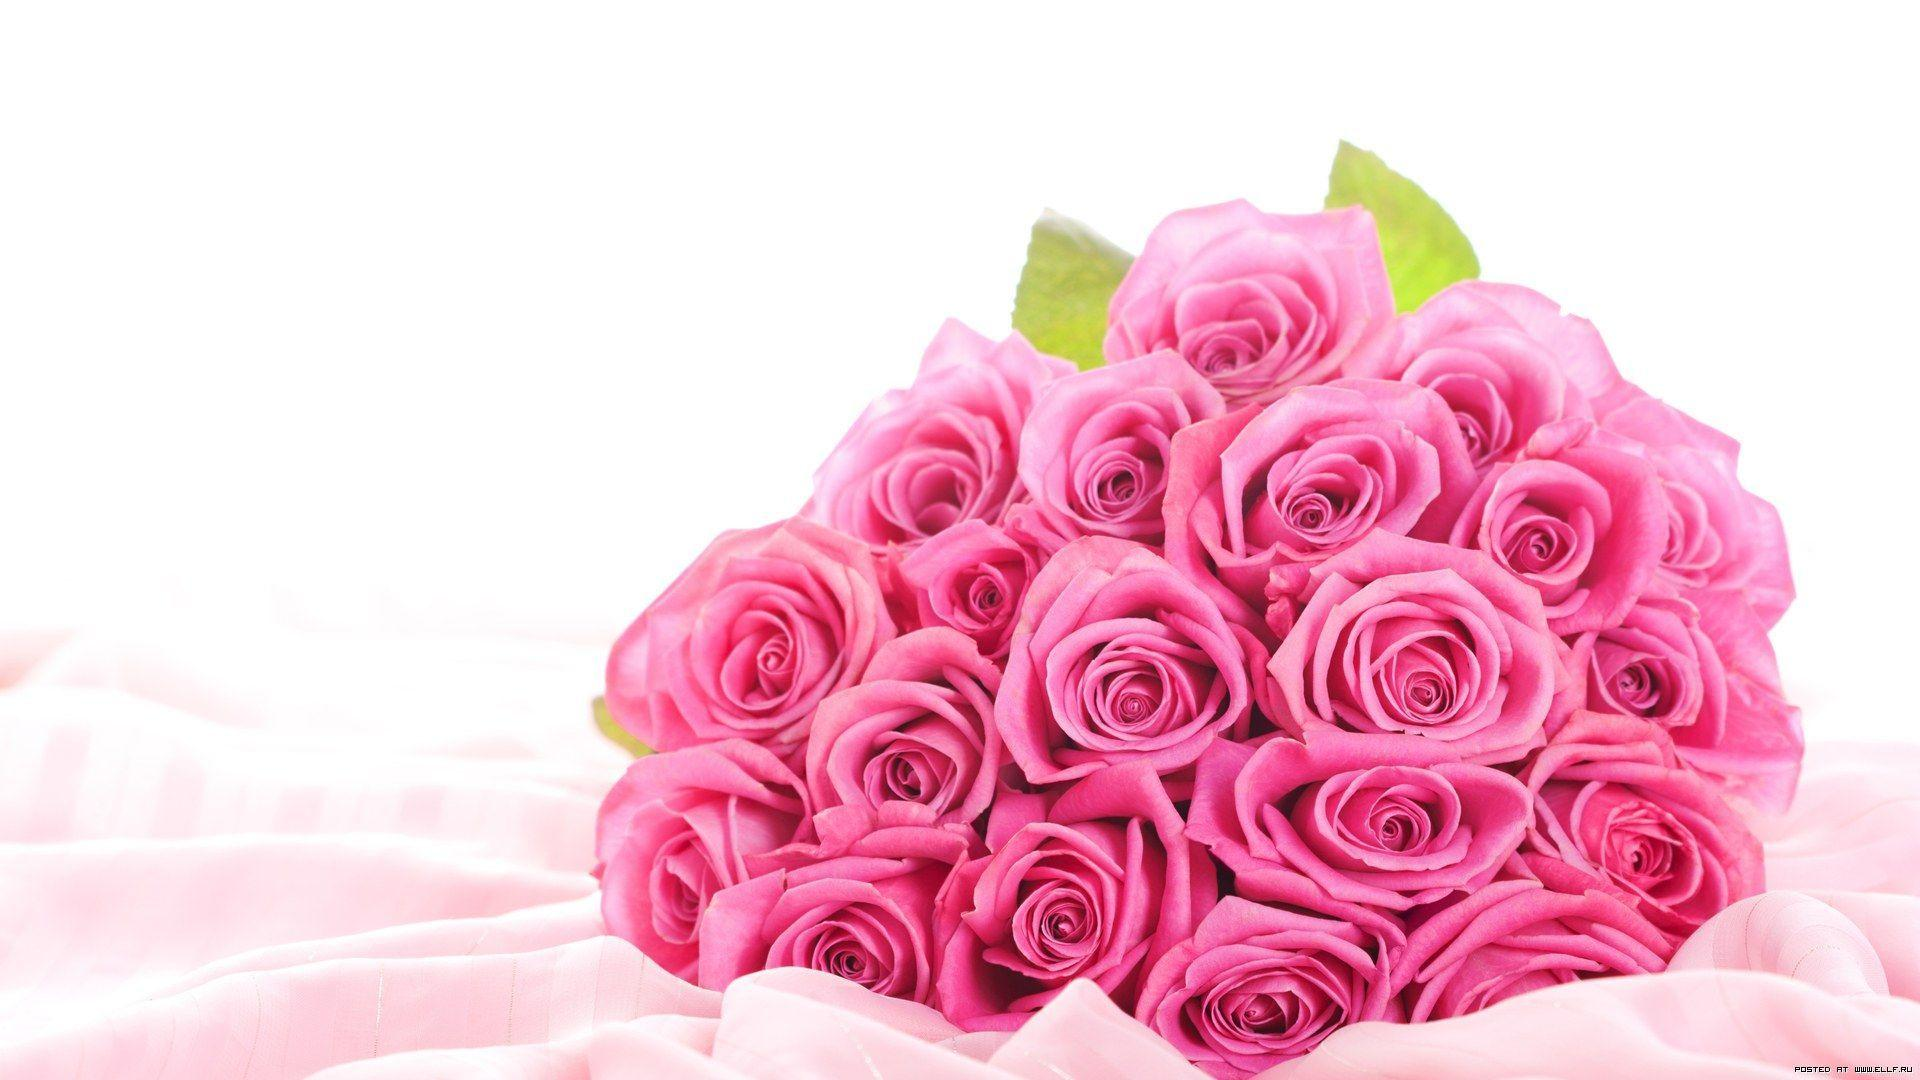 Wallpaper Hd Rose Flowers Images For Mobile Bestholidaydeals Co